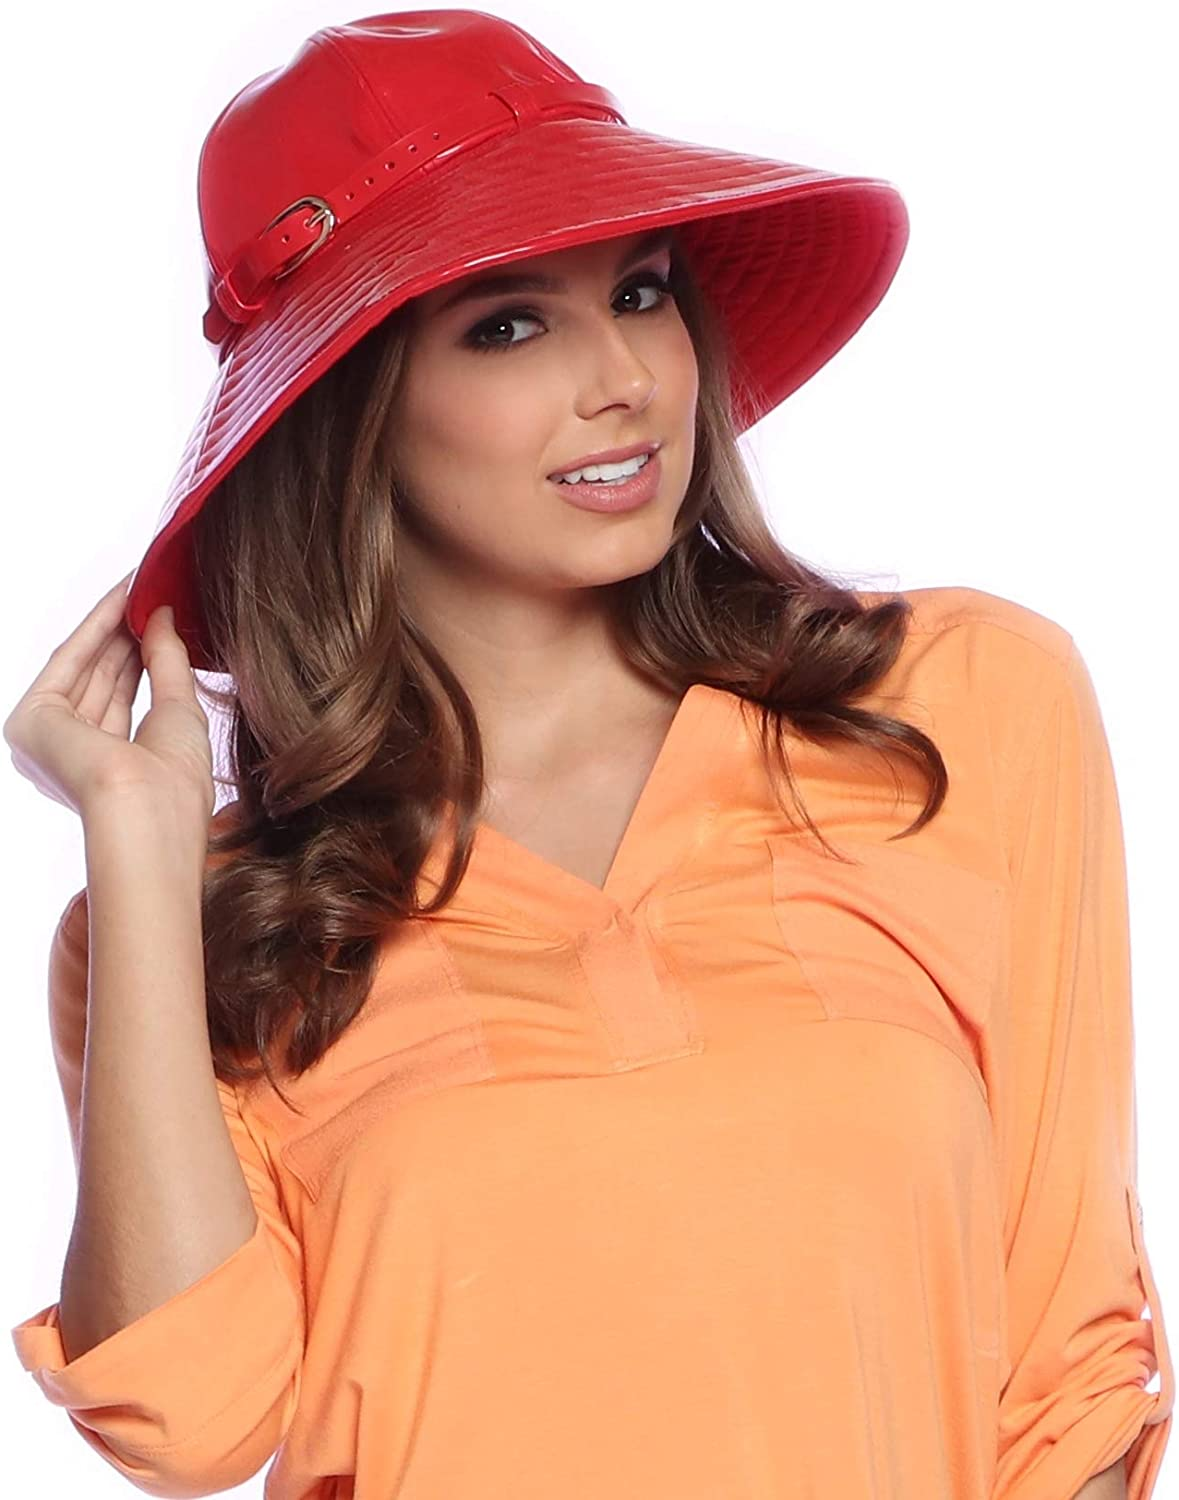 VINRELLA Rain Hat for Woman with Adjustable Chin Strap - Waterproof, Sun Protection, Bucket Hat, Patent Sun Hat, One Size